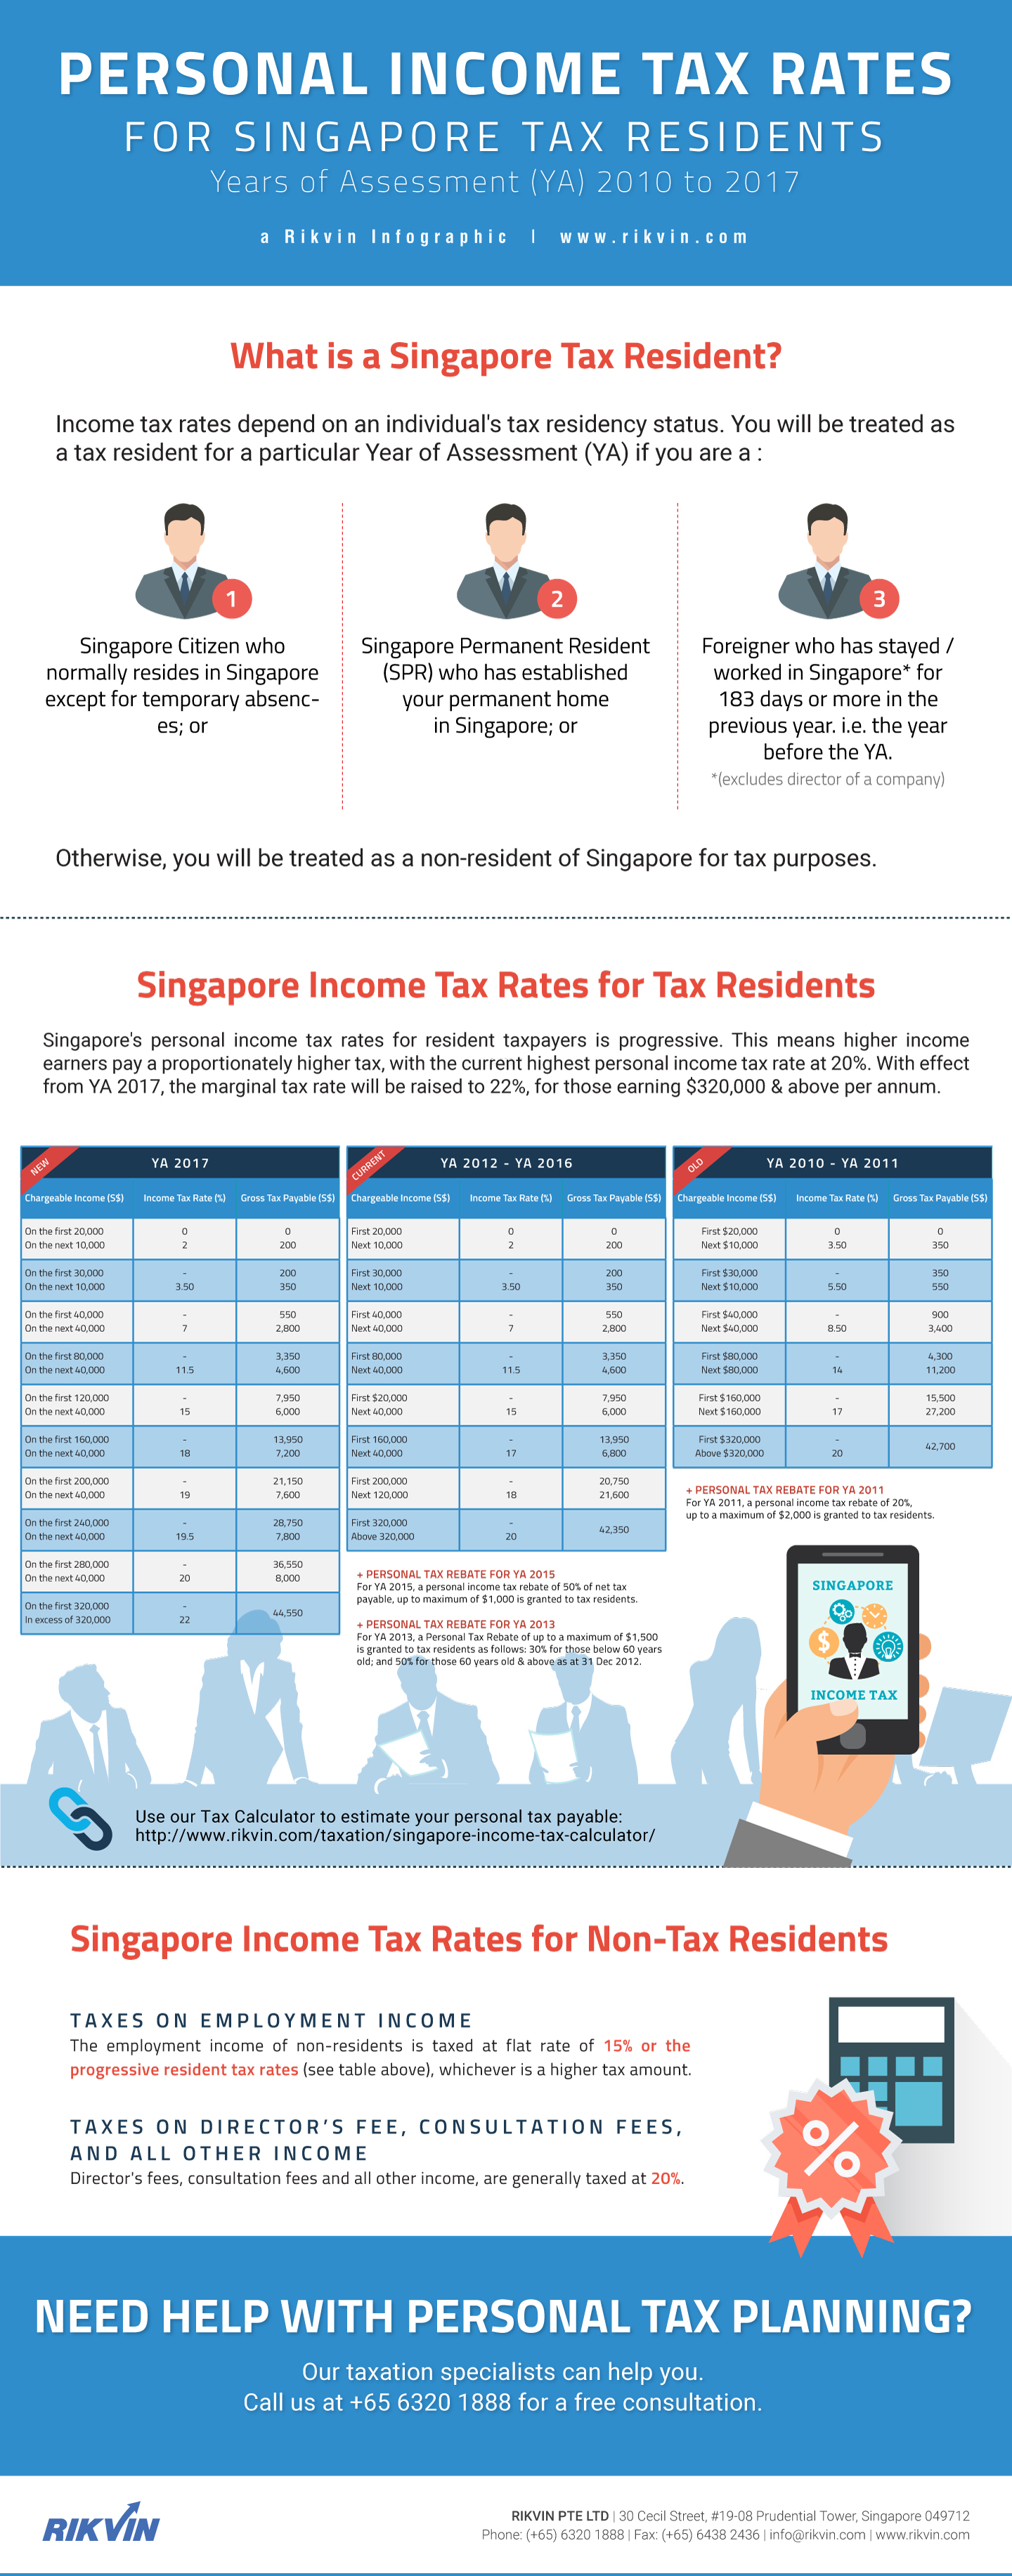 Personal_Income_Tax_Rates-YA_2010-2017-Rikvin_Infographic Personal Income Tax Rates for Singapore Tax Residents (YA 2010-2017)